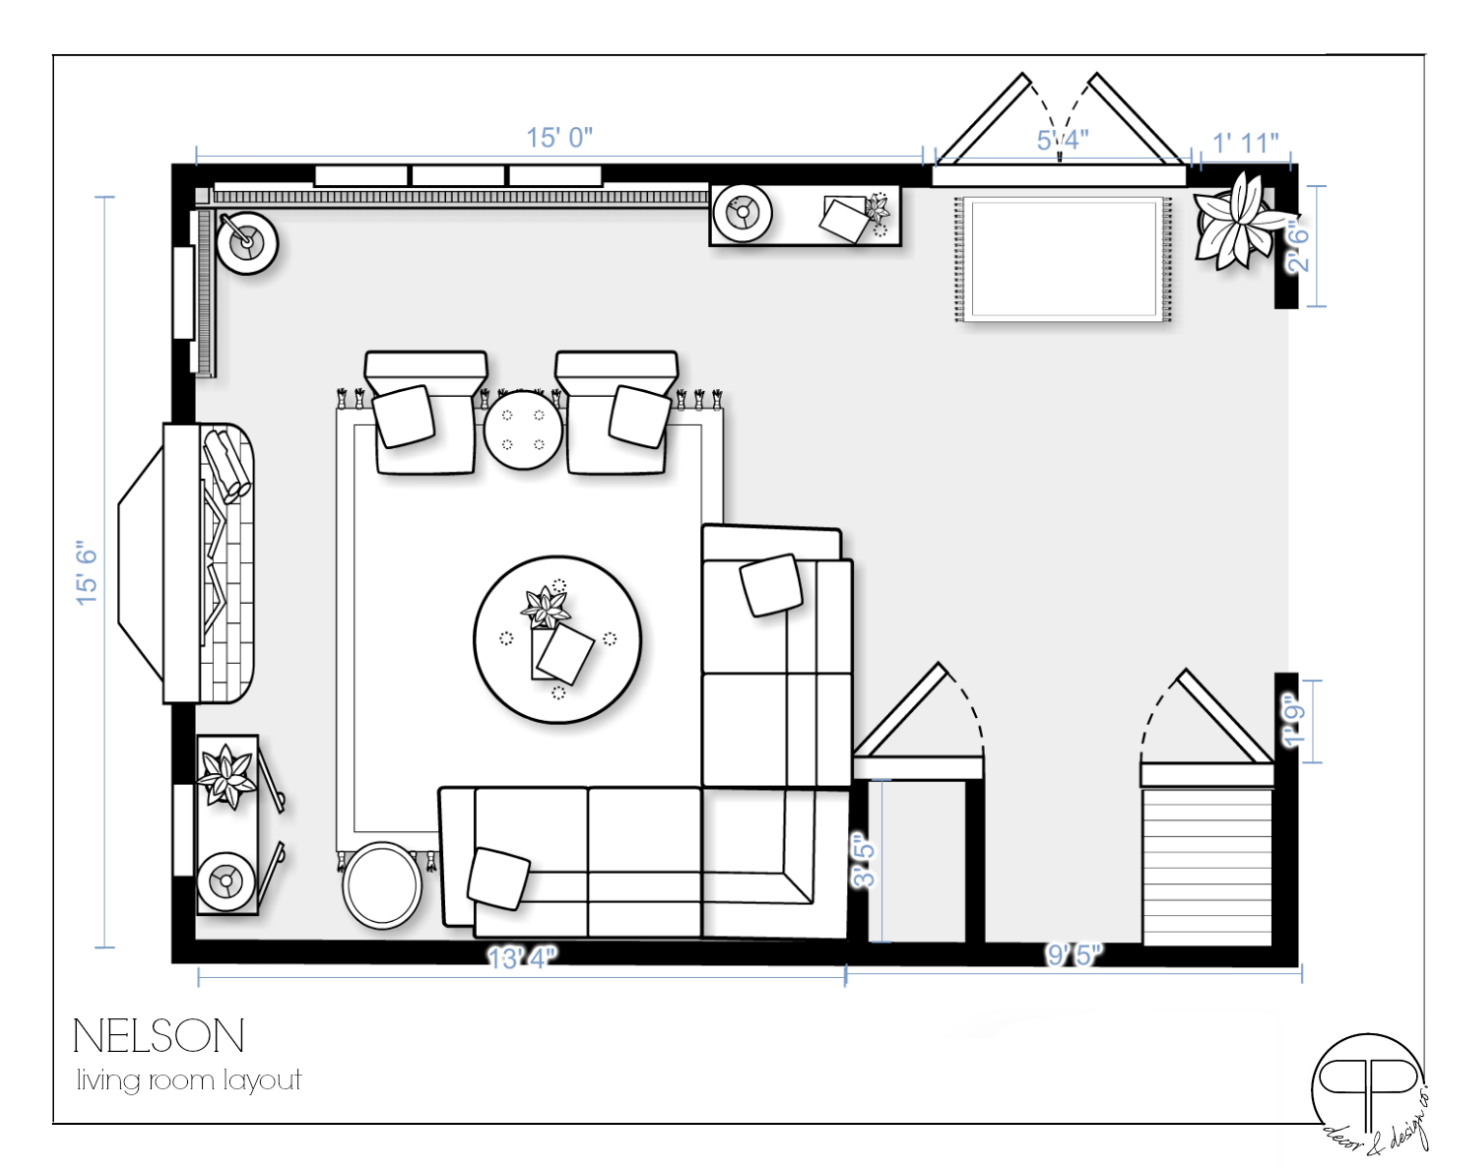 Nelson_Living_Room_Layout.png